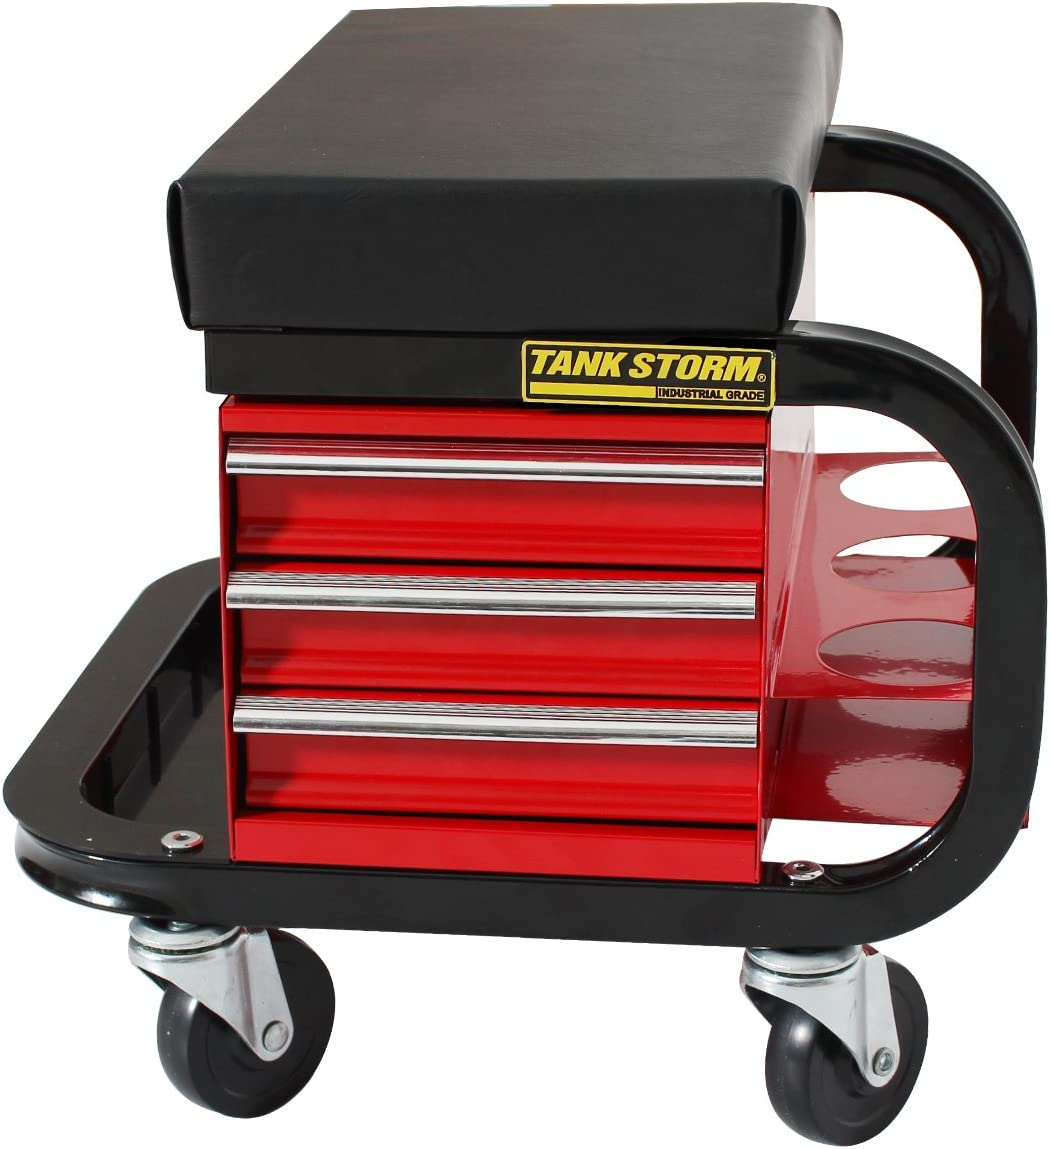 TANKSTORM Tool Box Built-In Creeper Seat, Garage Shop Roller Seat, 3 Drawers Heavy Duty Tool Chest With 4 Rolling Casters-350 Lbs Capacity: Automotive